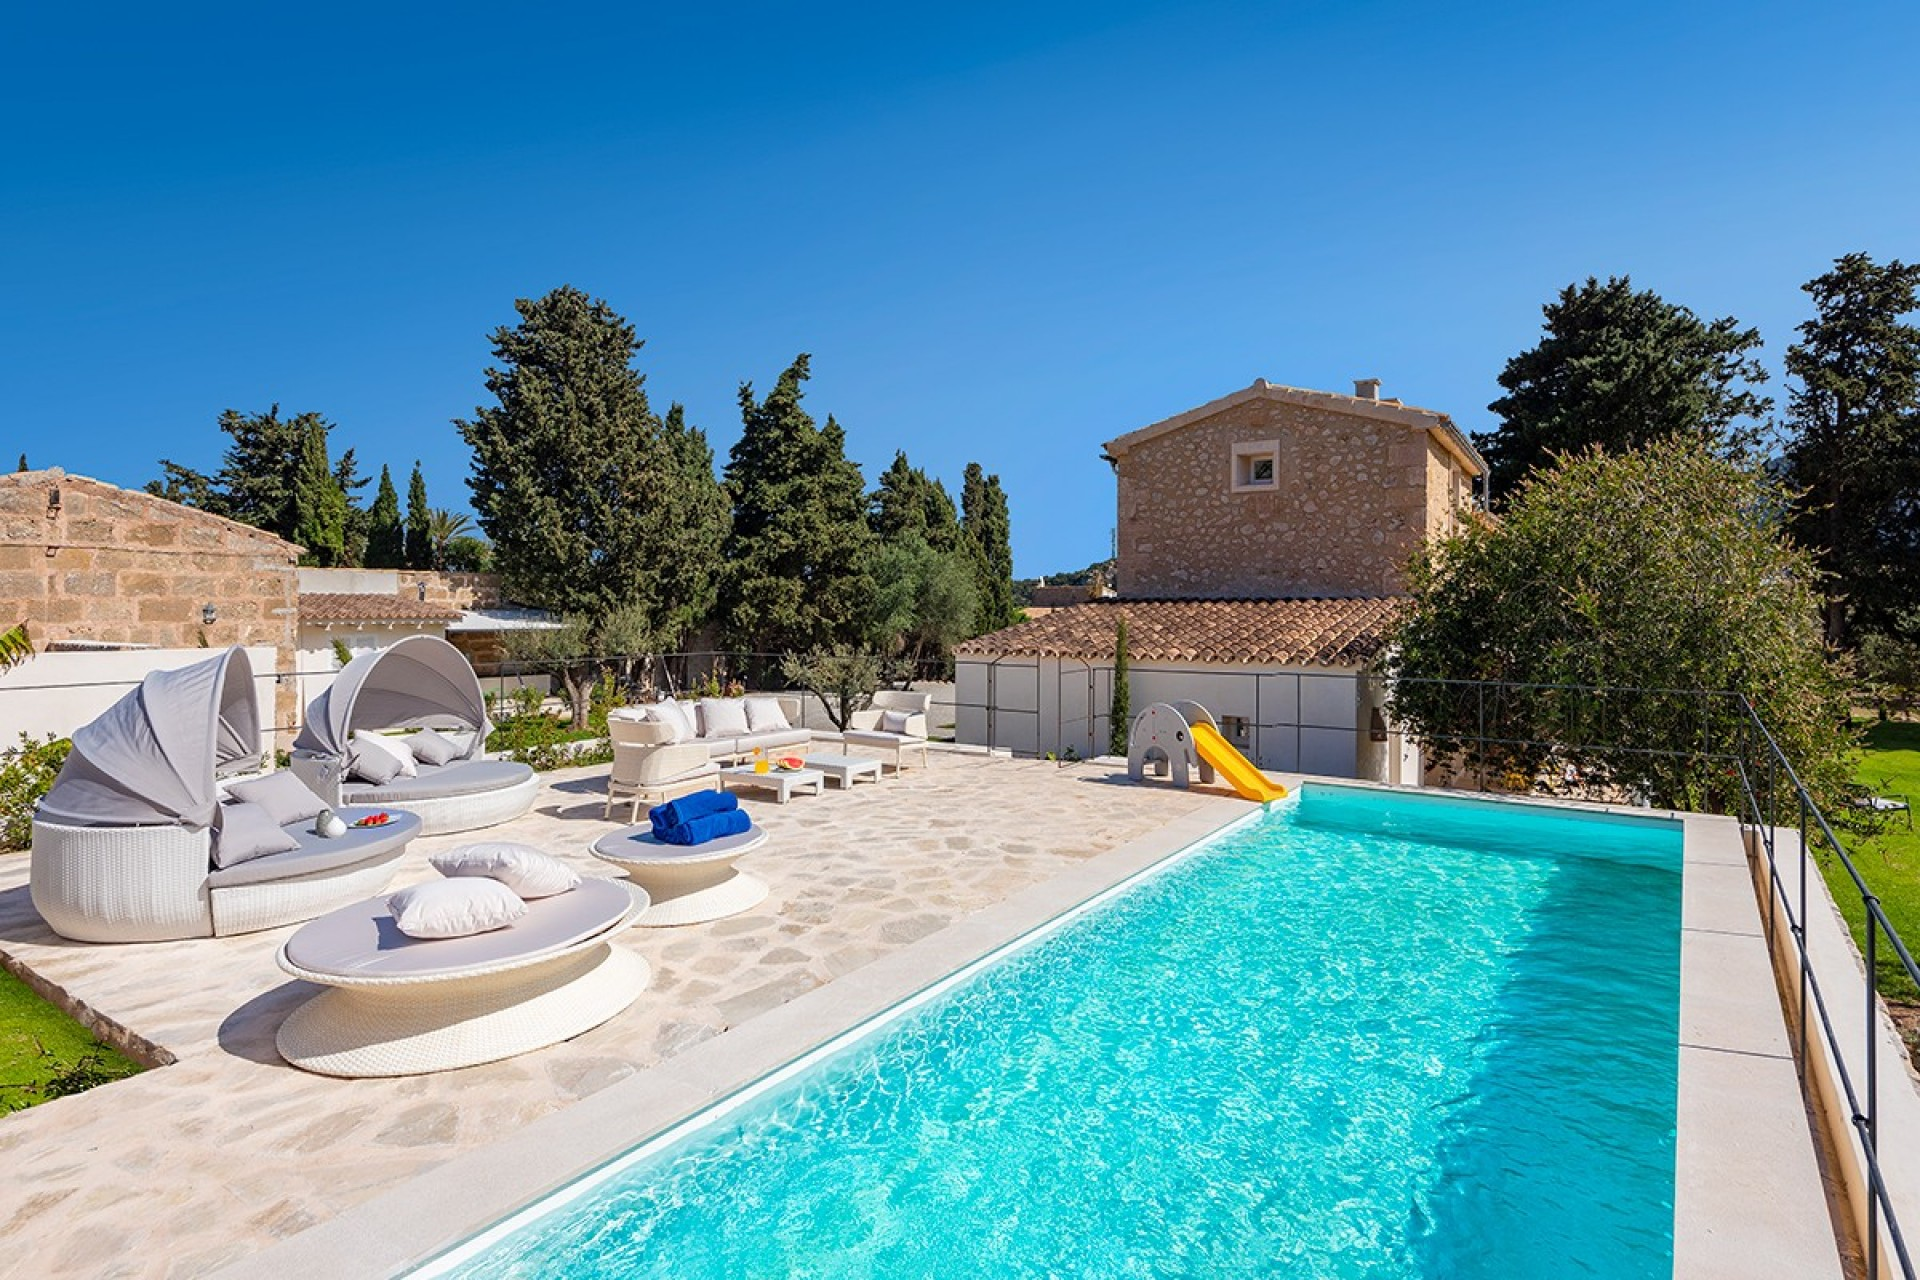 Superb rural retreat rental in Pollensa, Mallorca with private pool